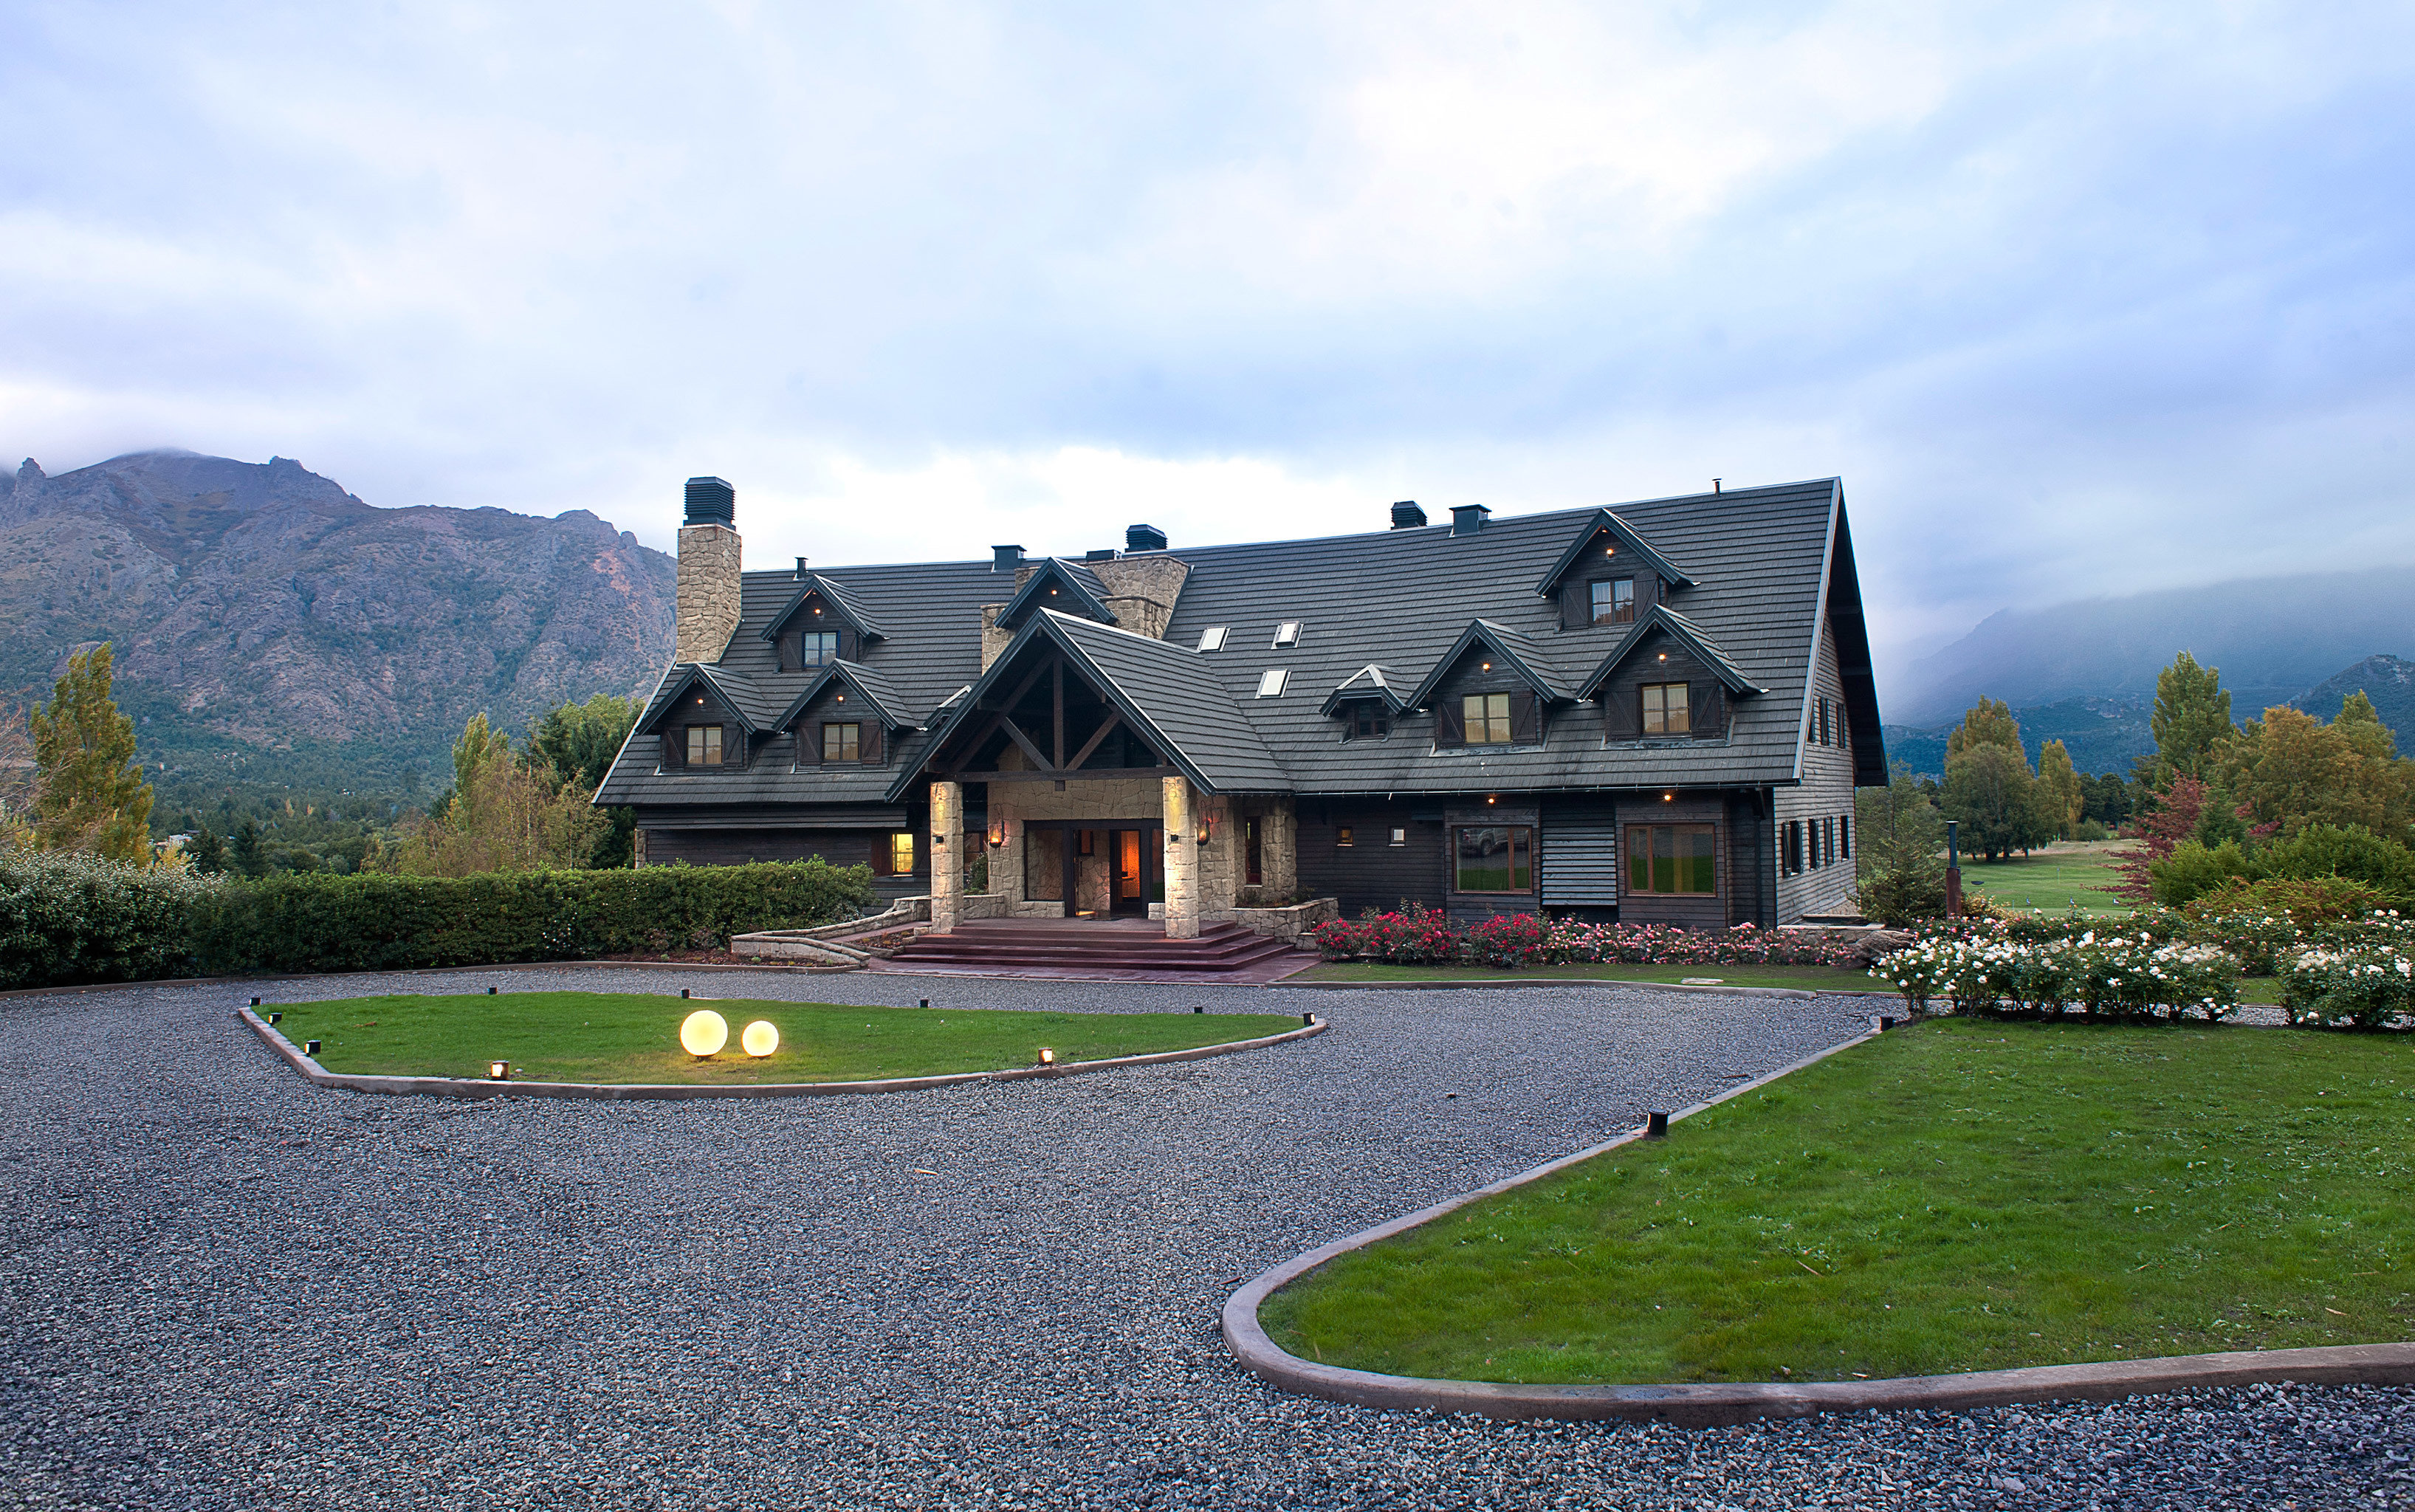 Country Exterior Grounds Lodge Rustic sky grass property residential area sport venue home lawn château